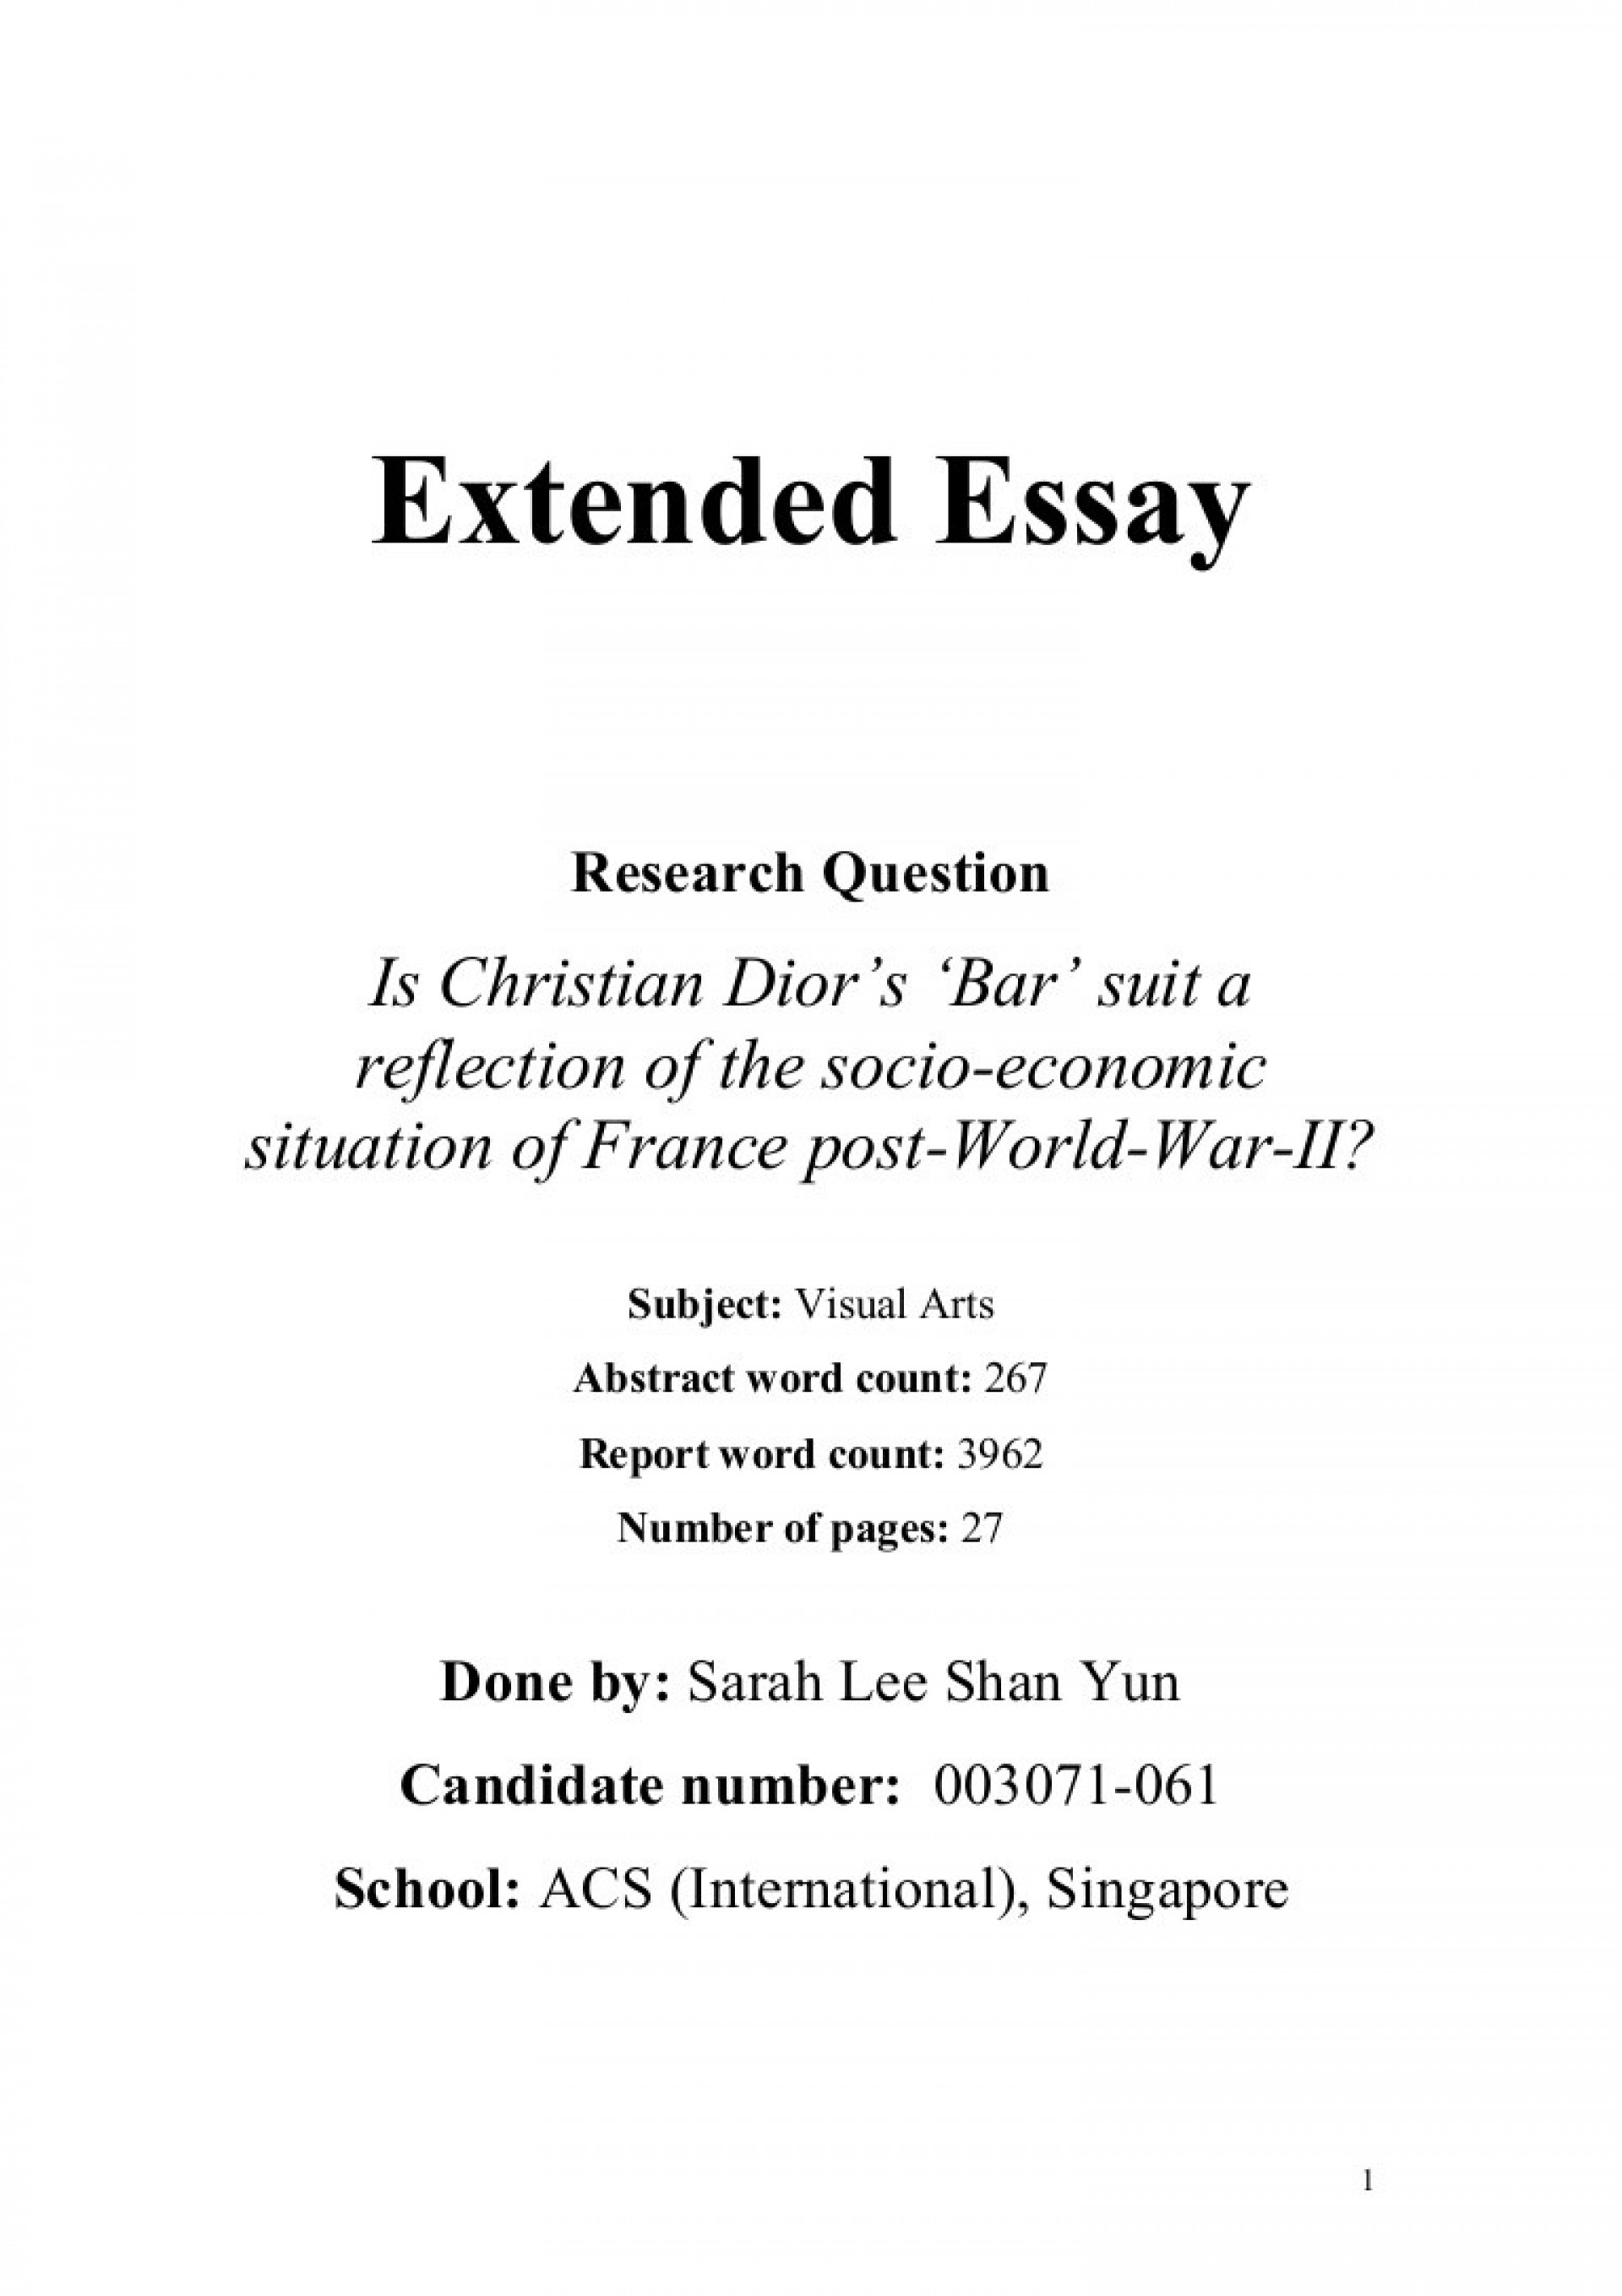 005 History Extended Essay Topics Extendedessay Phpapp01 Thumbnail 4resize7682c1087 Awesome Questions Ideas Ib 1920